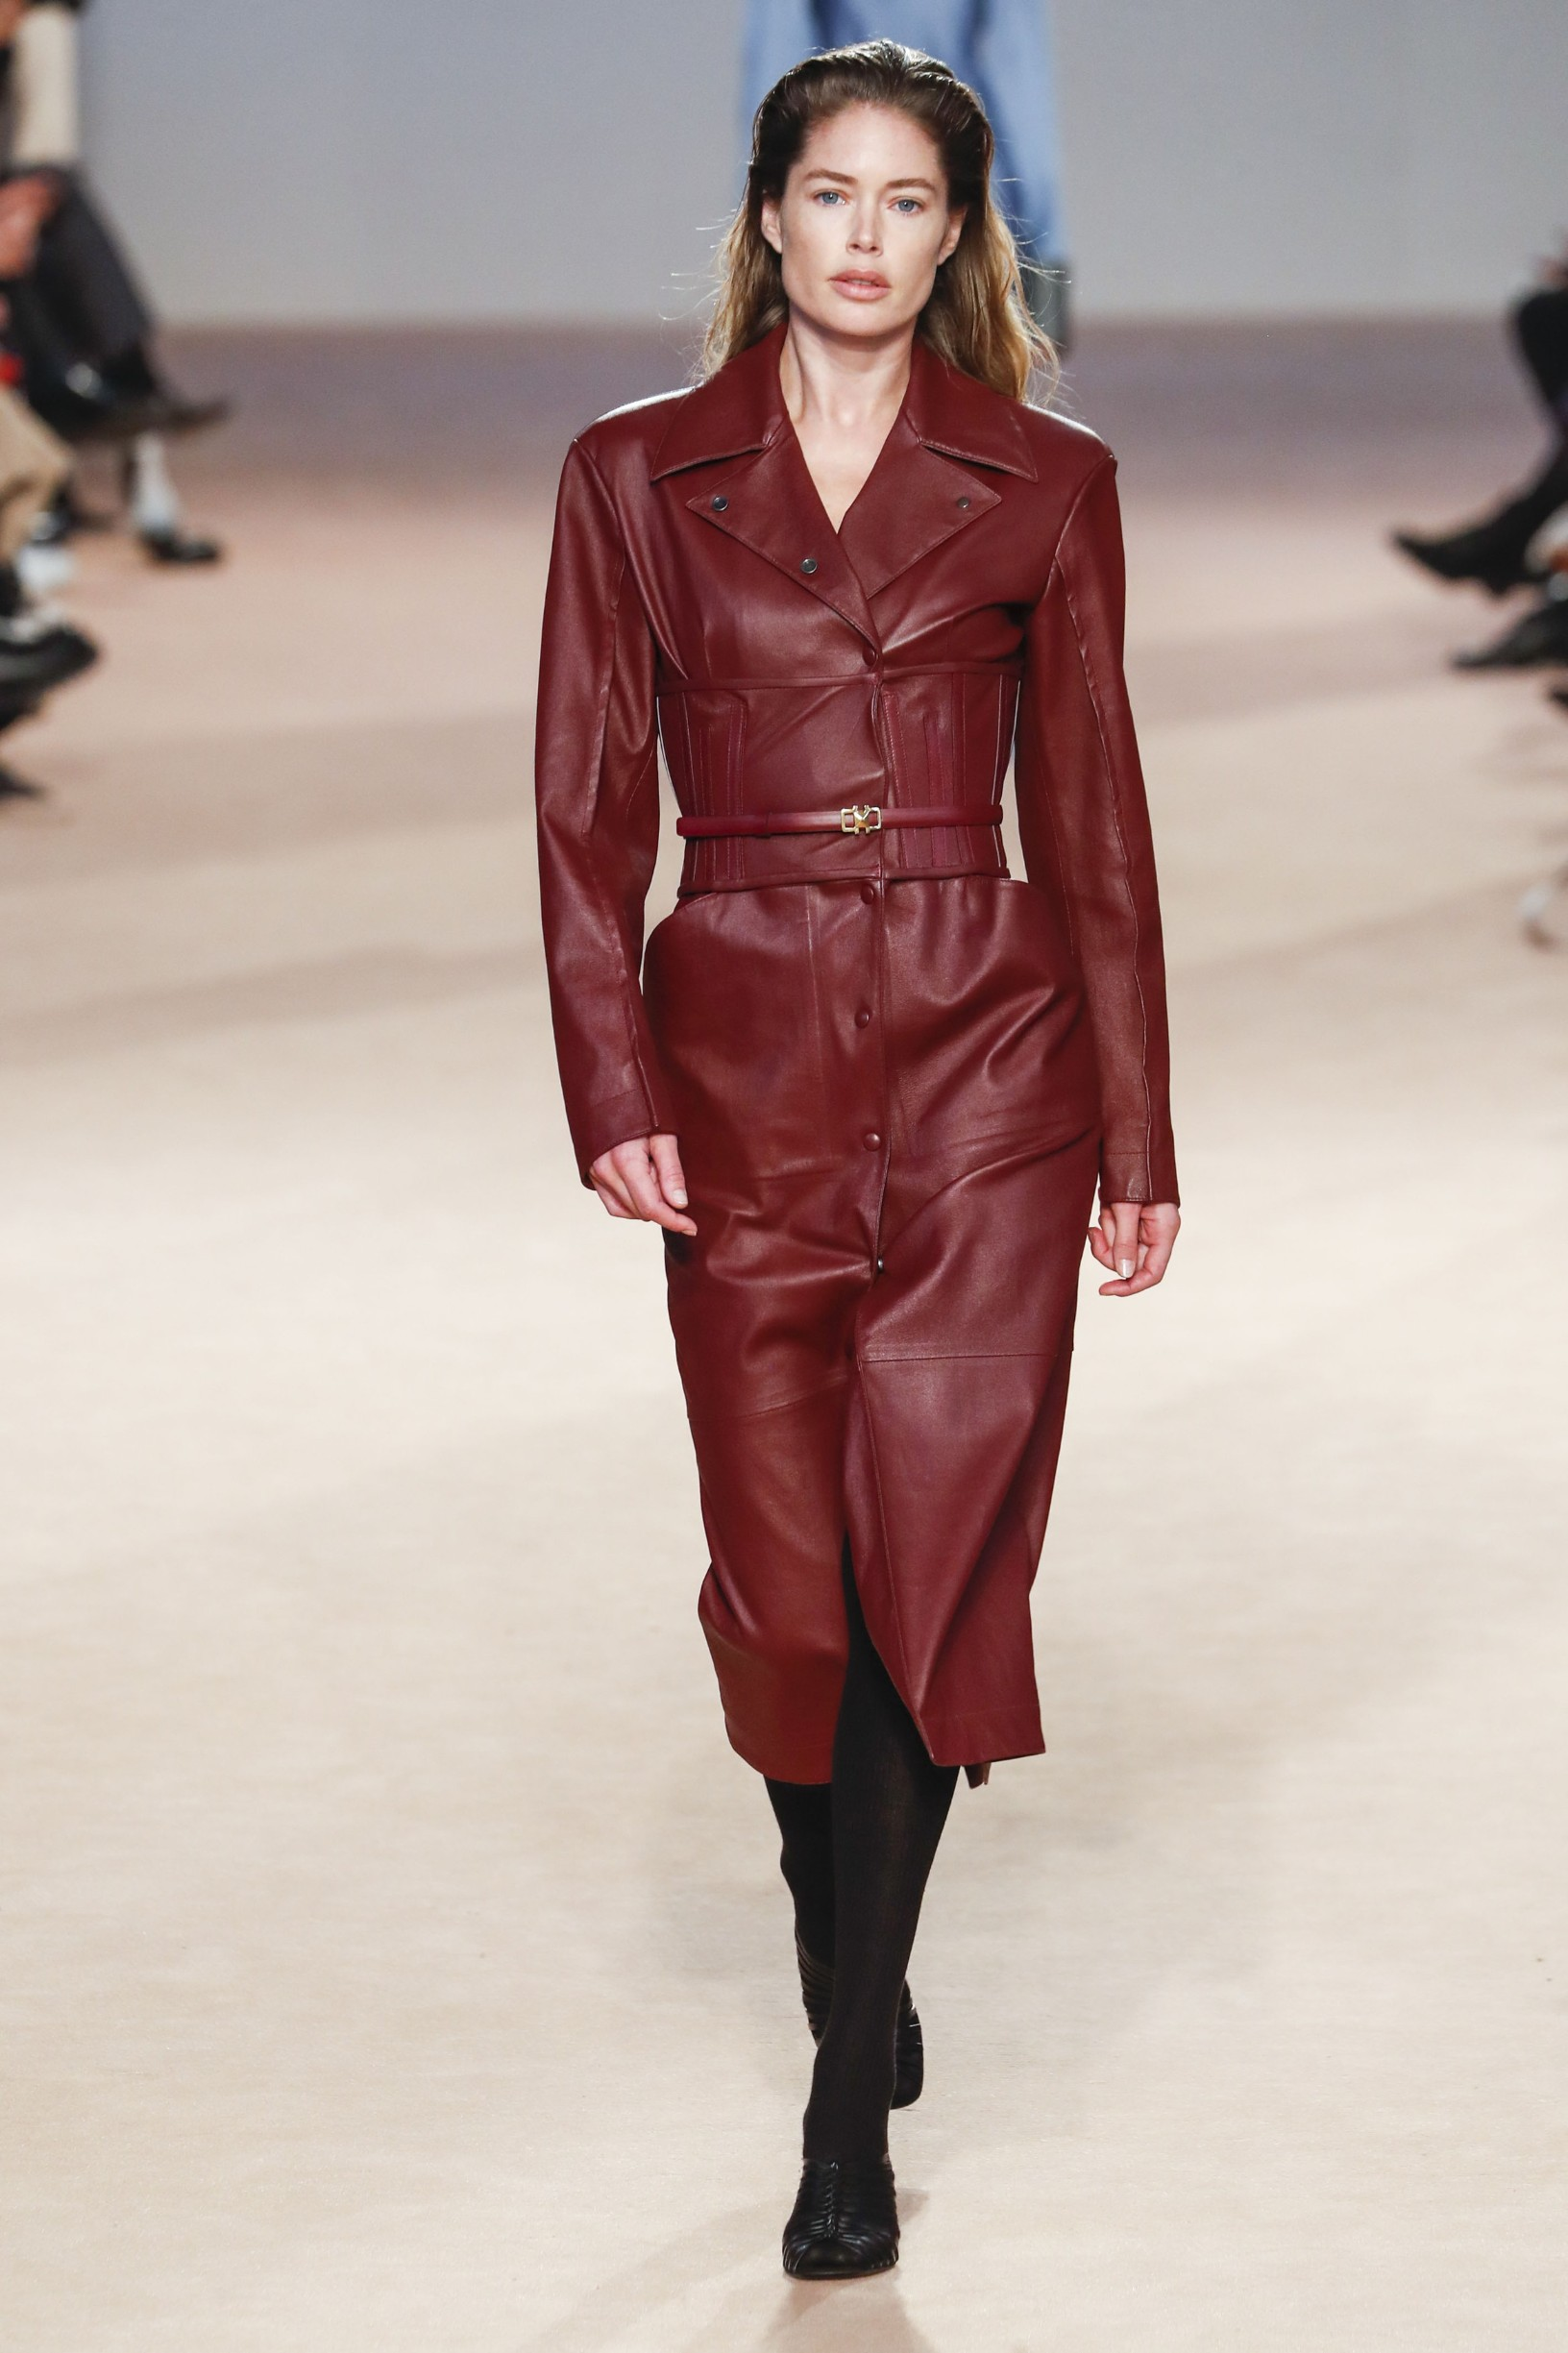 Salvatore Ferragamo  Model On Catwalk, Woman Women, Milan Fashion Week 2020 Ready To Wear For Fall Winter, Defile, Fashion Show Runway Collection, Pret A Porter, PAP, Modelwear, Modeschau Laufsteg Autumn Herbst Italy  Model, Fashion Show, Runway, Catwalk, Style, Look,, Image: 500451521, License: Rights-managed, Restrictions: WORLD RIGHTS excluding USA, ITALY, AUSTRIA, FRANCE - Fee Payable Upon Reproduction - For queries contact Avalon.red - sales@avalon.red London: +44 (0) 20 7421 6000 Los Angeles: +1 (310) 822 0419 Berlin: +49 (0) 30 76 212 251, Model Release: no, Credit line: Avalon.red / Avalon Editorial / Profimedia